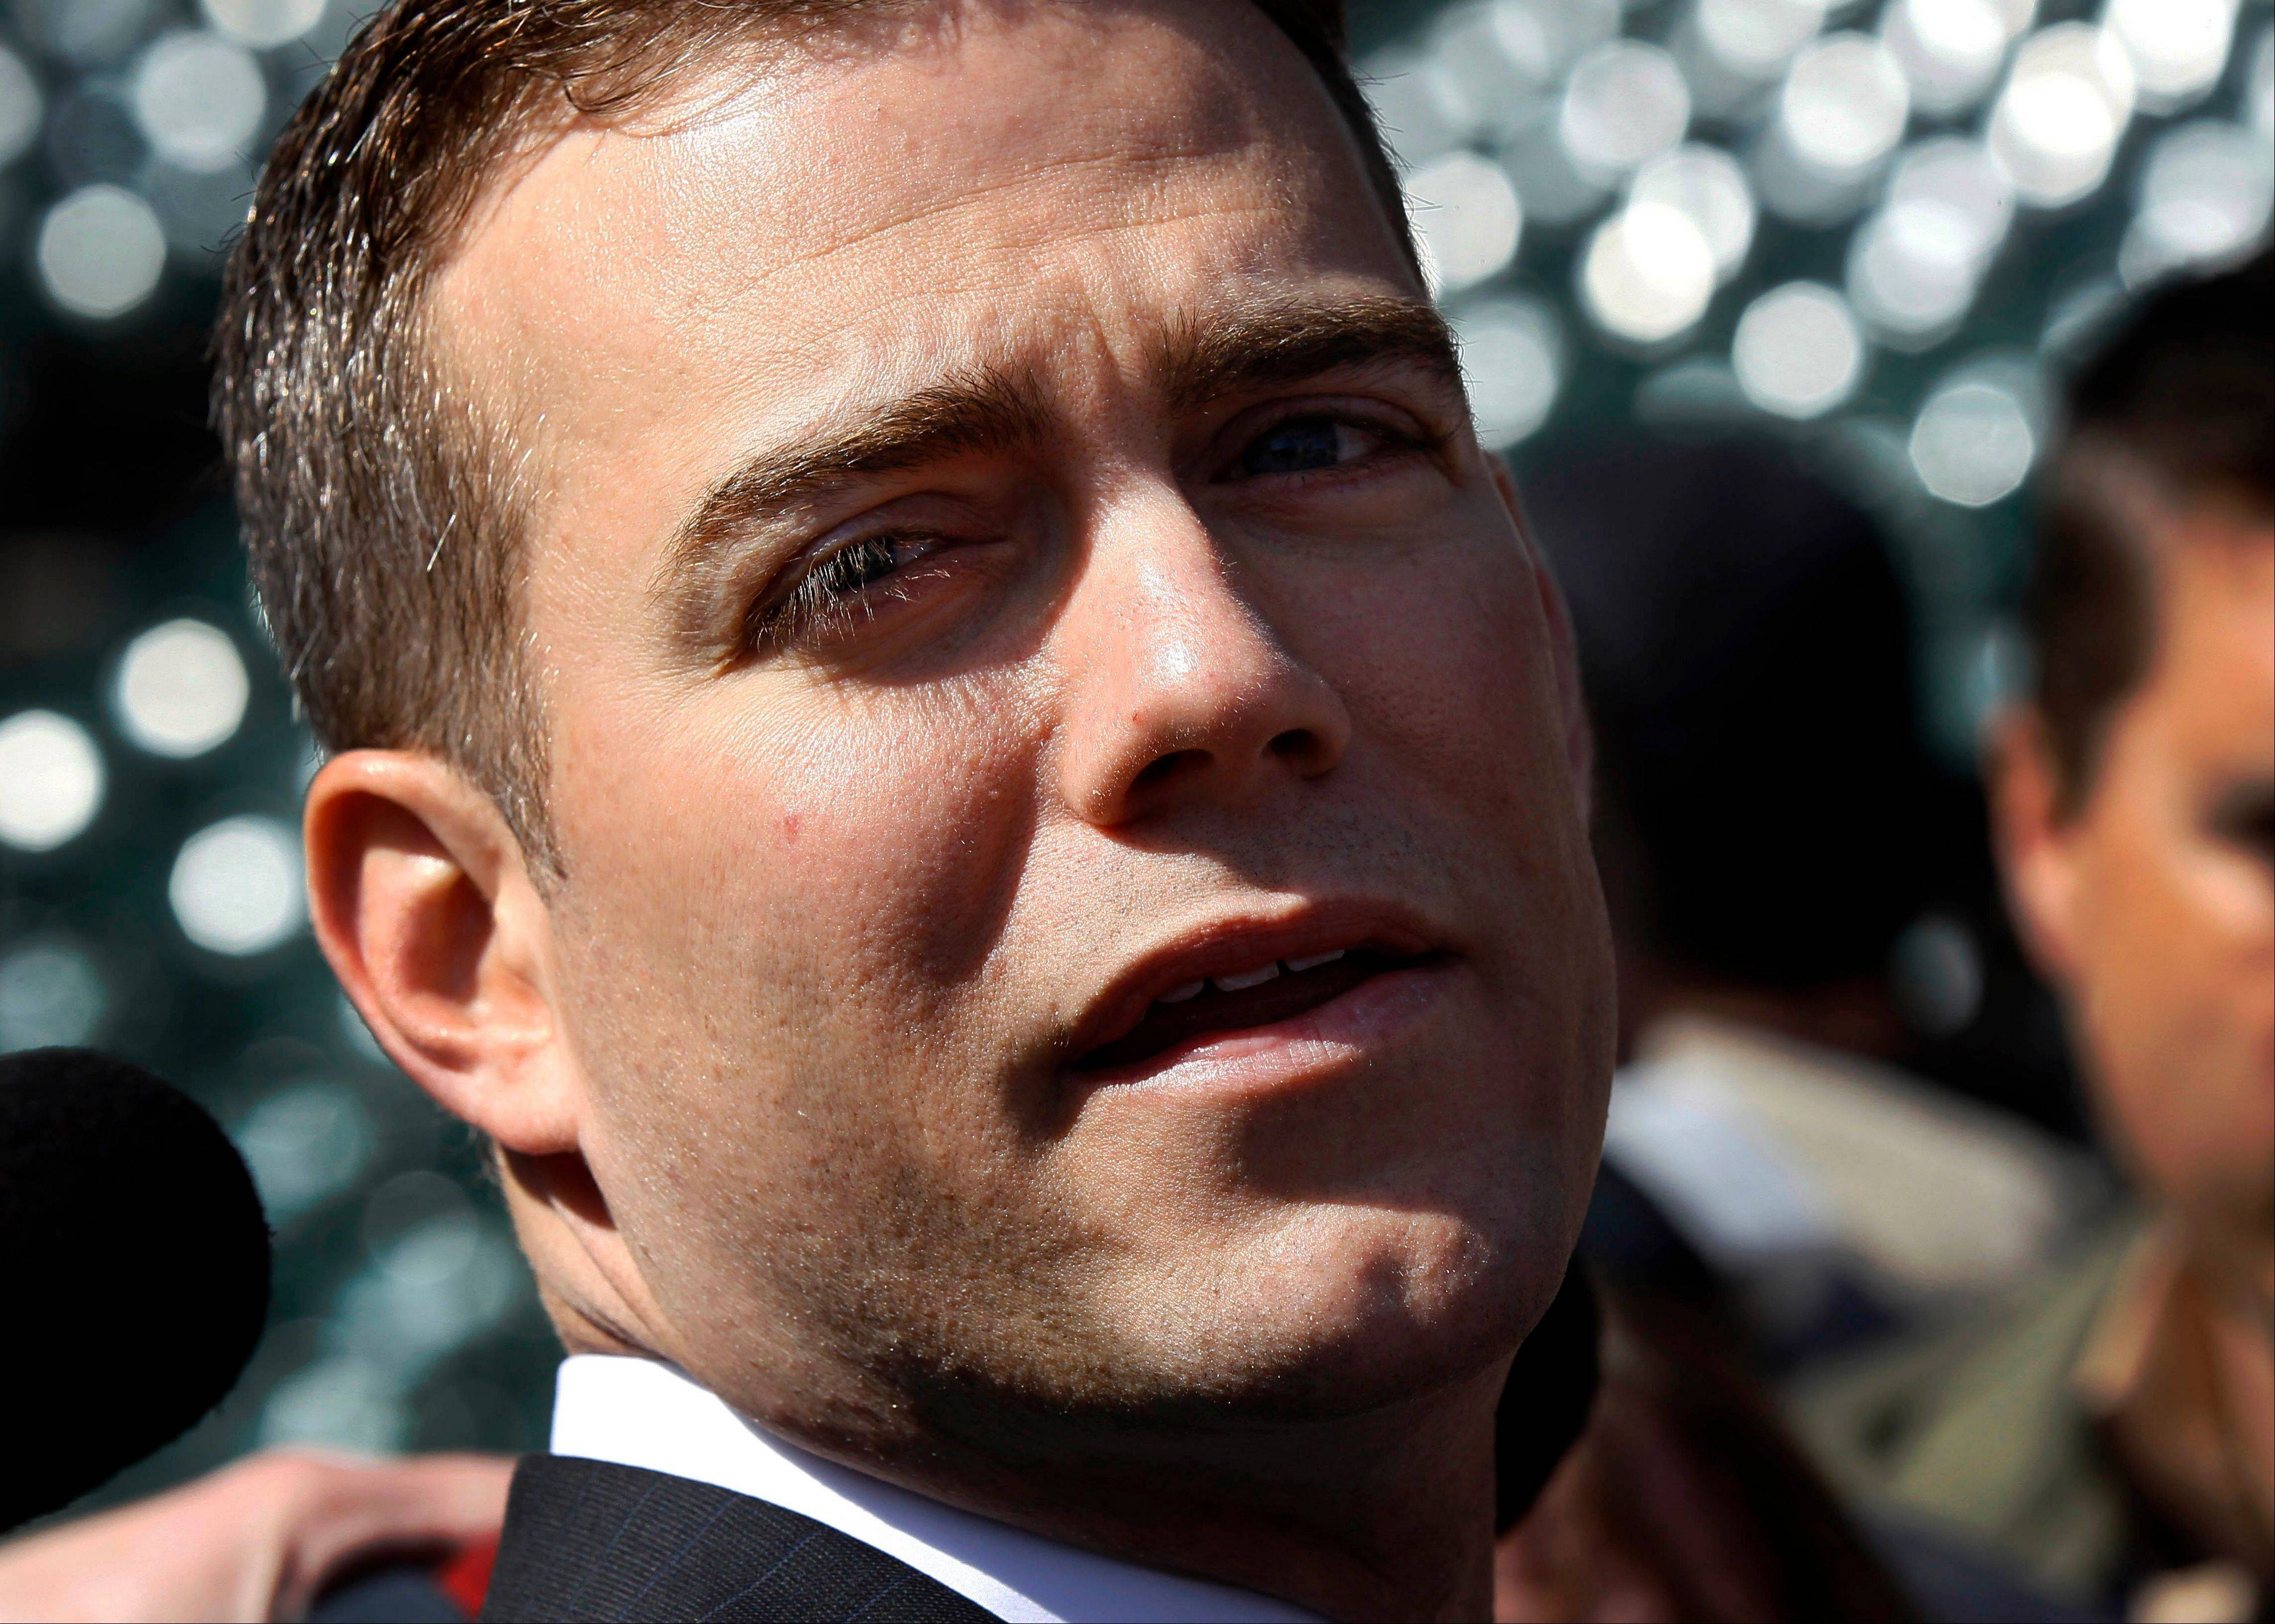 Chicago Cubs president Theo Epstein looks out over the field as he talks to reporters before an opening day baseball game against the Washington Nationals, Thursday, April 5, 2012, in Chicago.